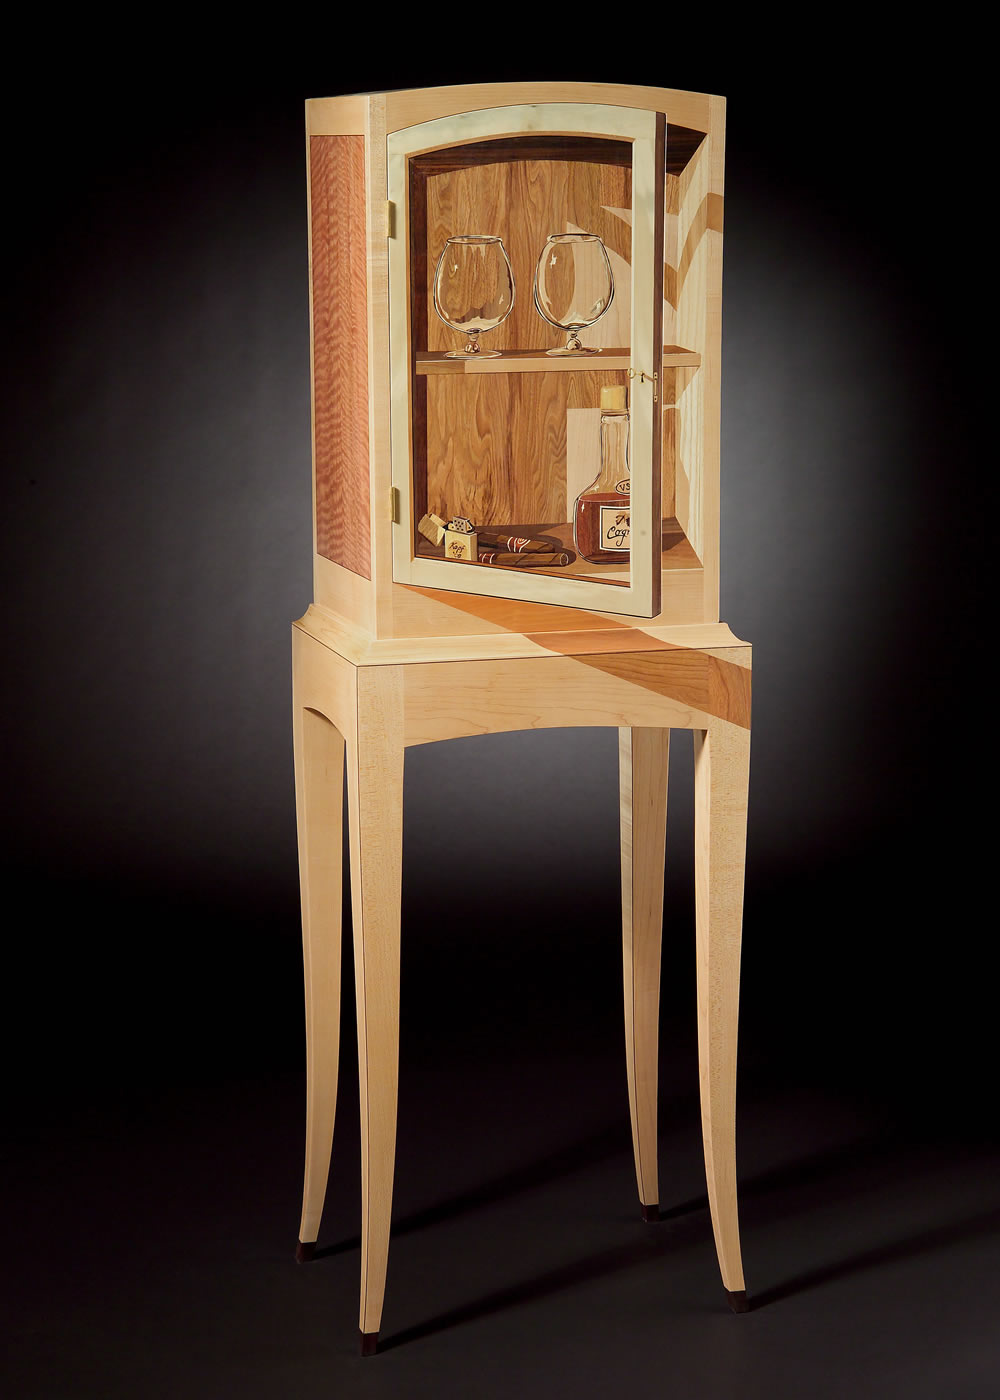 desk chairs aqua dining room chair covers trompe l'oeil – silas kopf woodworking inlaid wood marquetry studio furniture